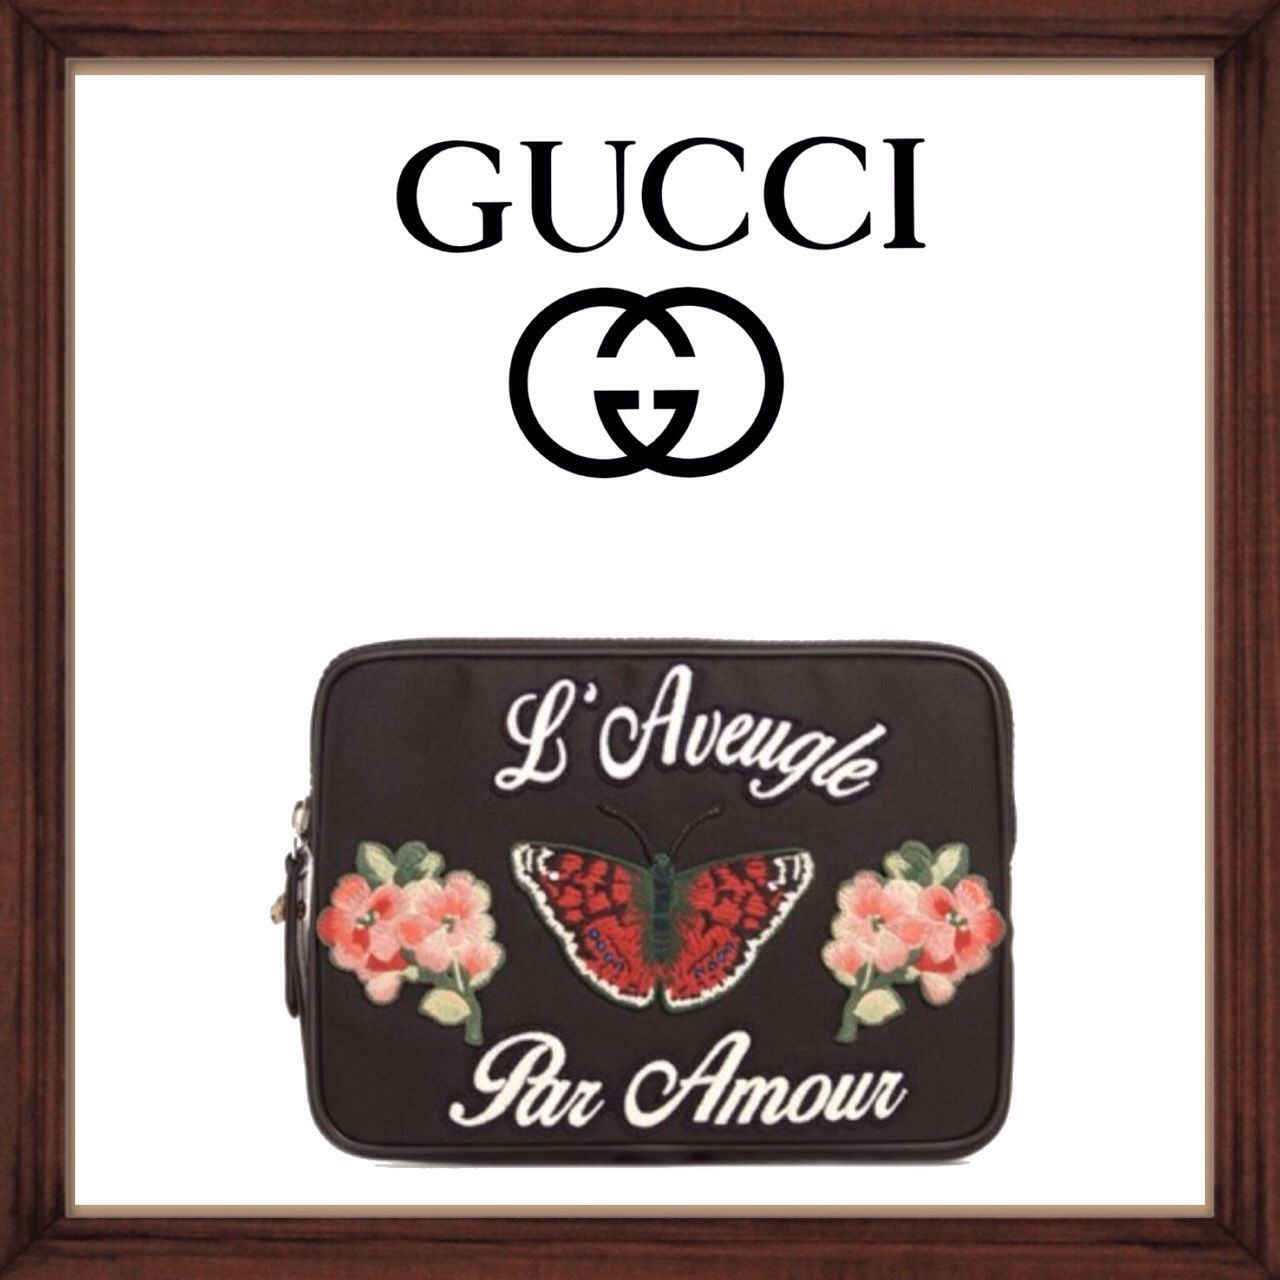 ★★GUCCI《グッチ》BUTTERFLY CROSSBODY BAG  送料込み★★